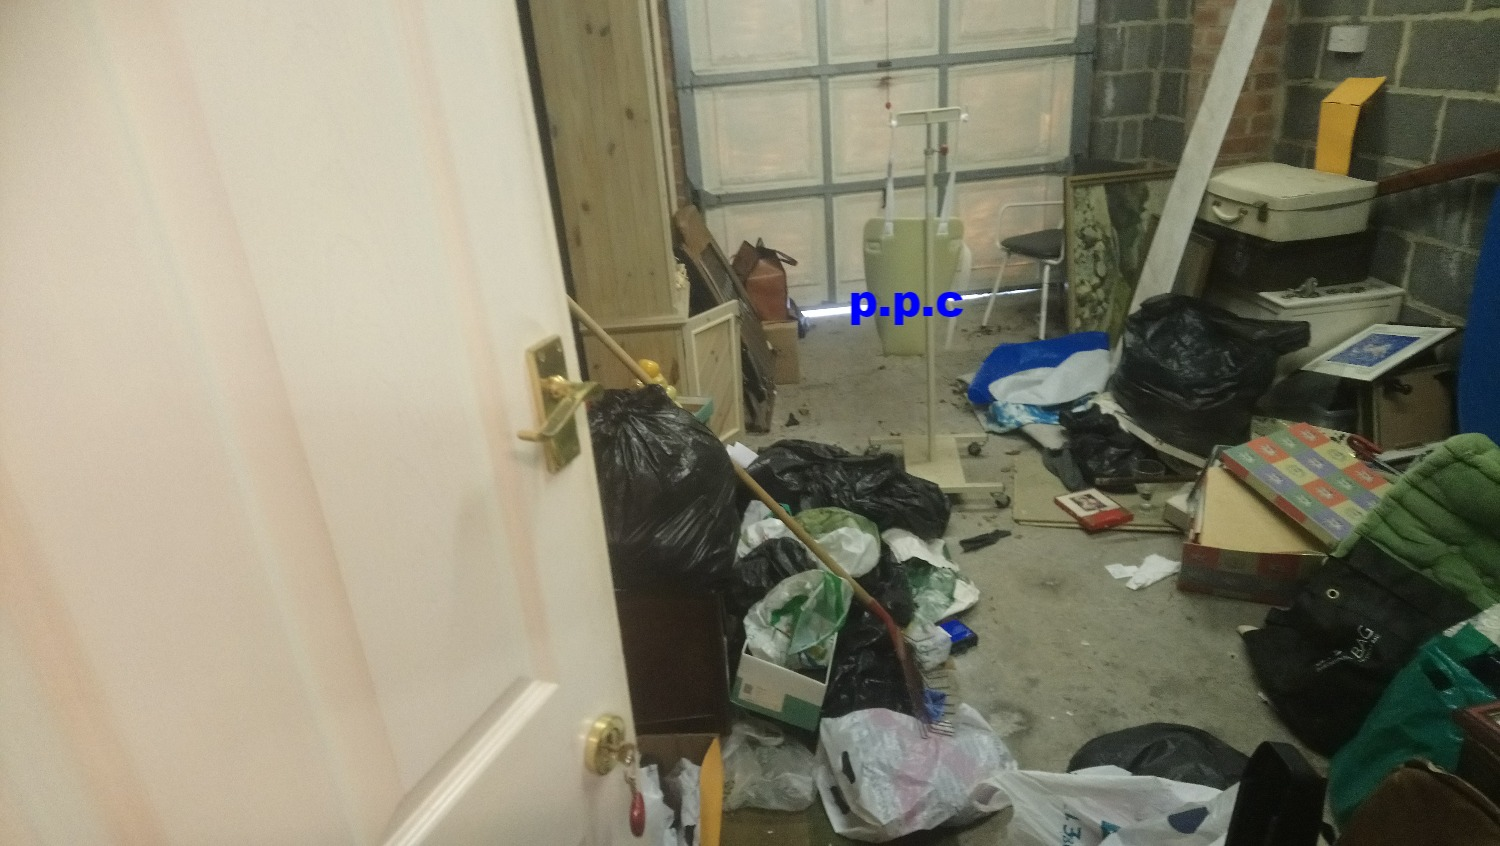 House clearance in fulwell pic 2